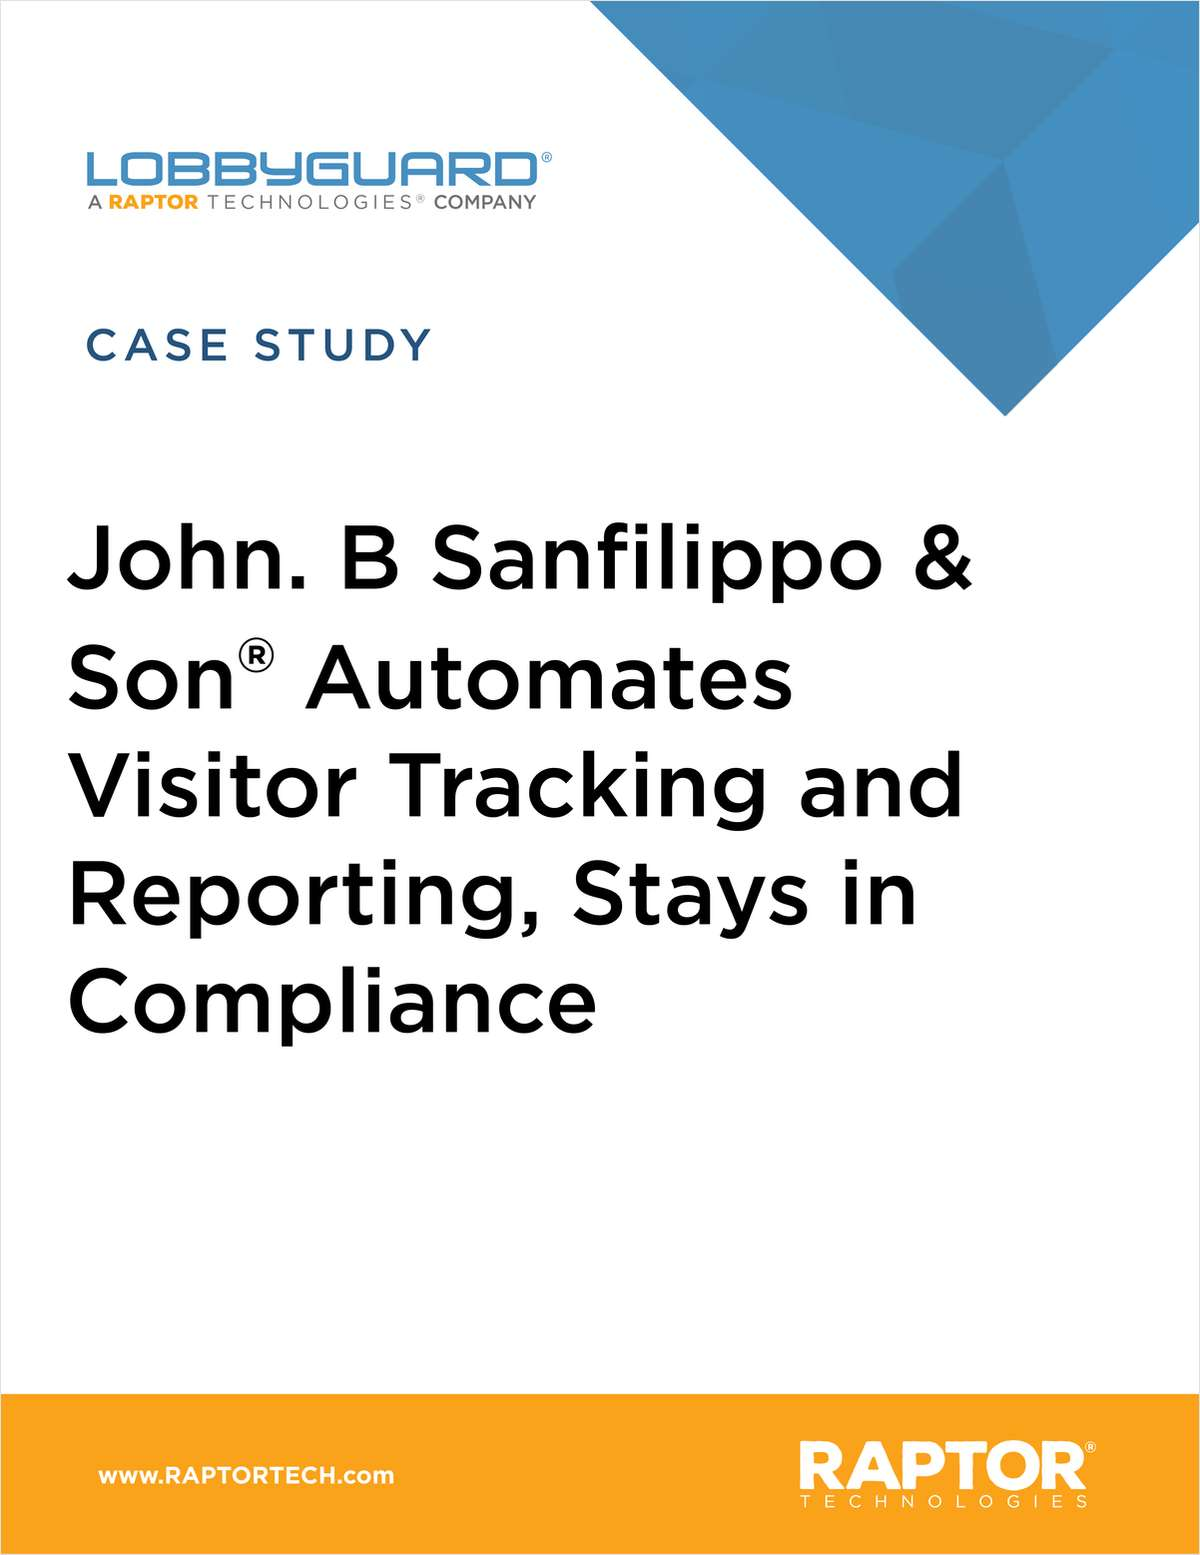 J.B. SanFilippo & Son® Automates Visitor Tracking and Reporting, Stays in Food Safety Compliance with LobbyGuard®